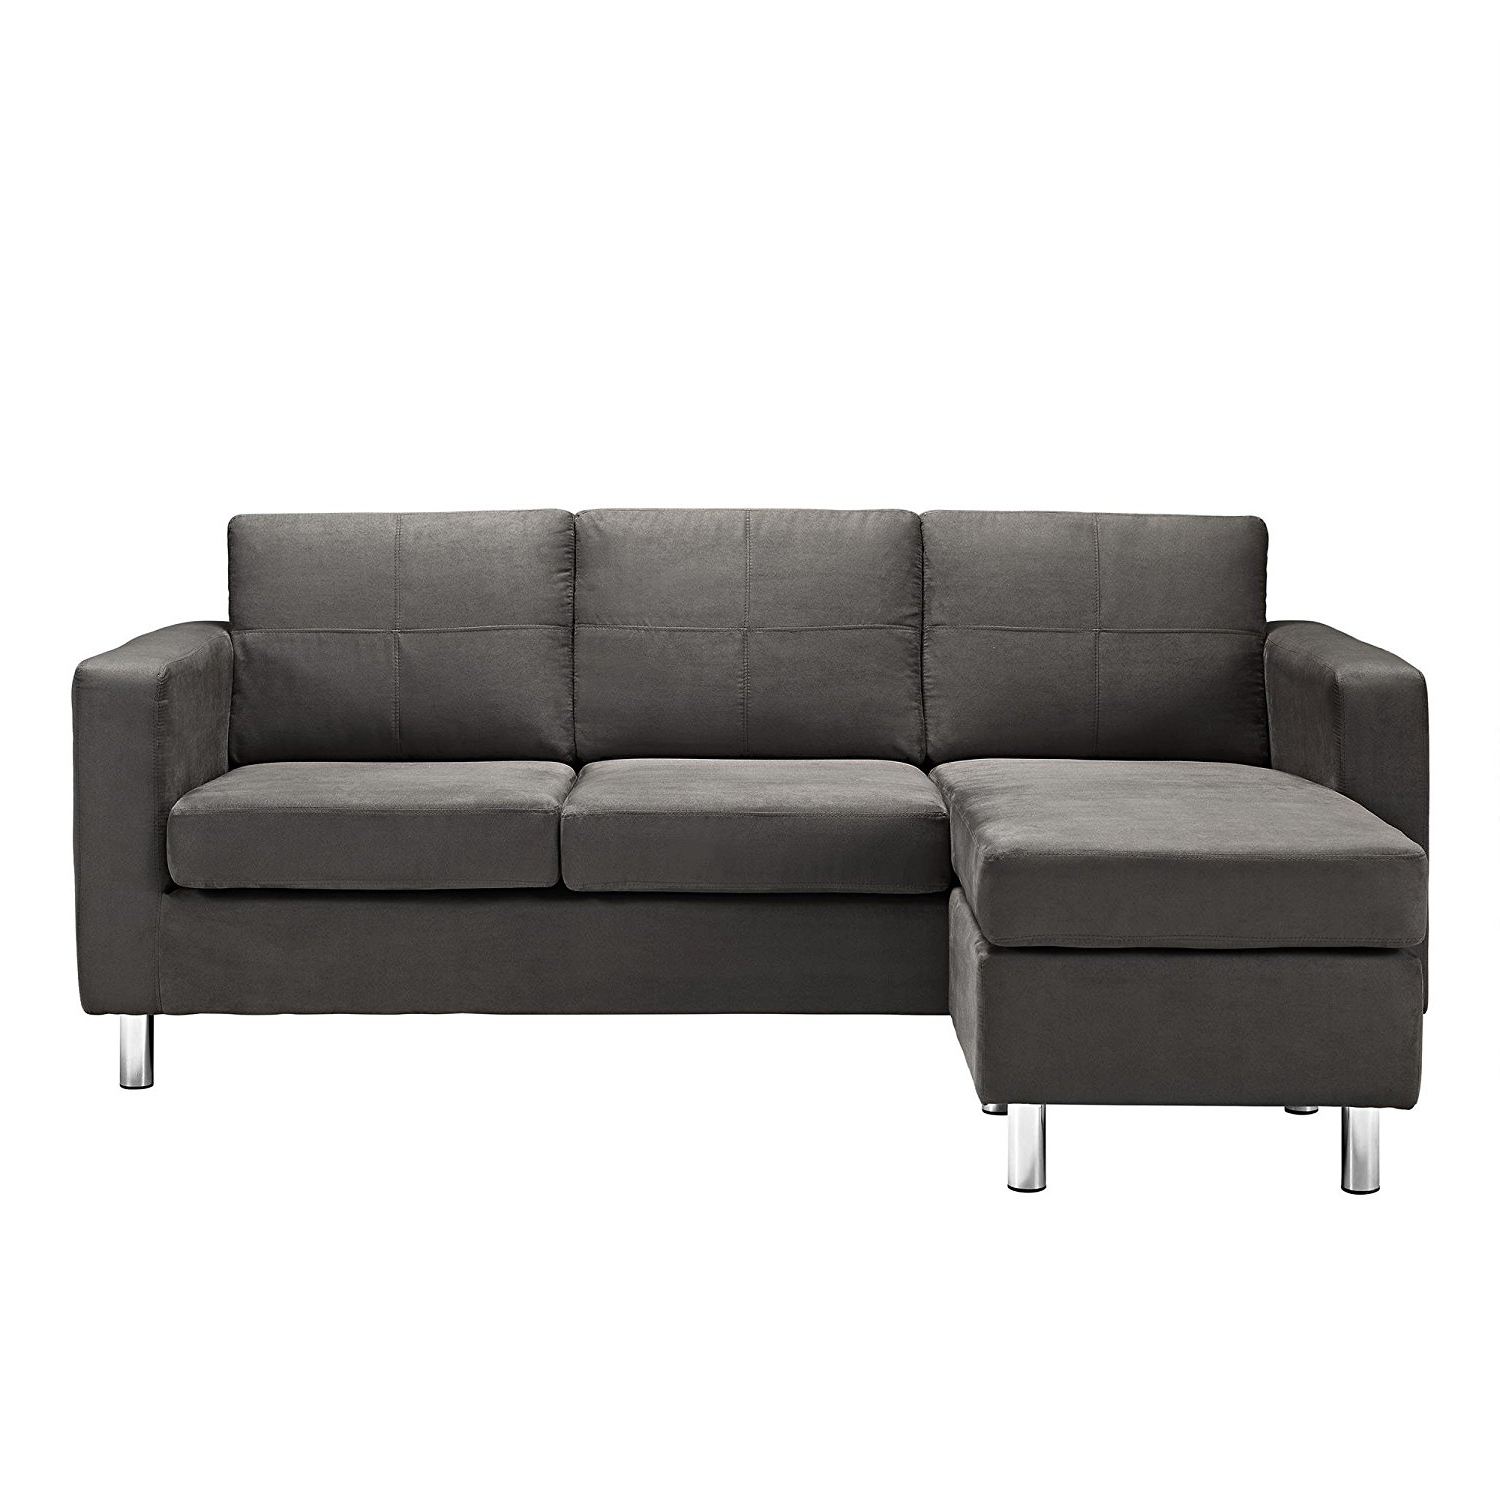 Amazon: Dorel Living Small Spaces Configurable Sectional Sofa Throughout Current Sectional Sofas At Amazon (View 13 of 15)